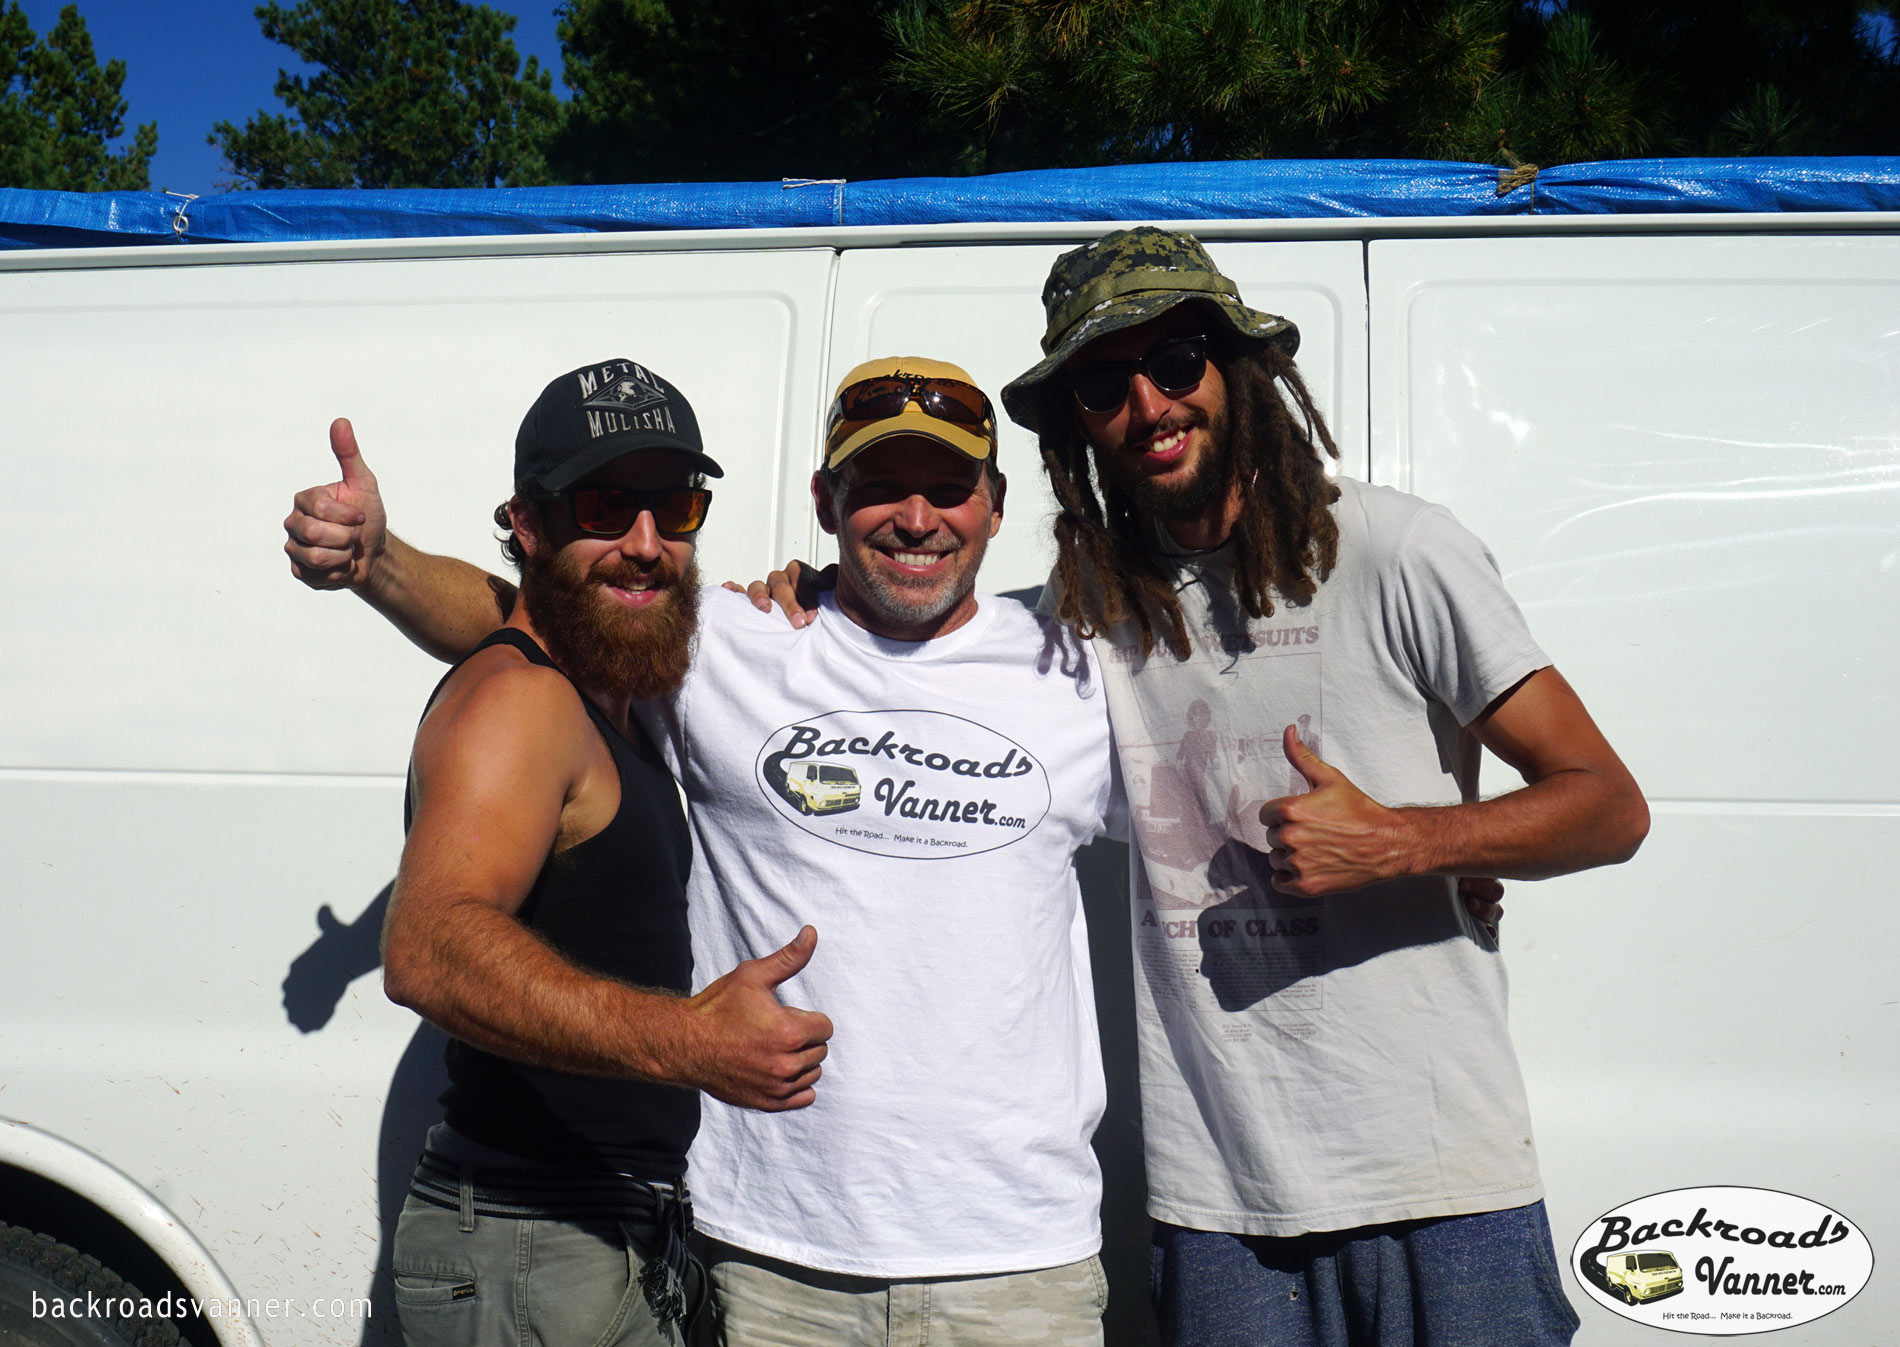 Living & Traveling in a Van To See The USA - Meet Ben & Schoeb from Canada | Photo by BackroadsVanner.com